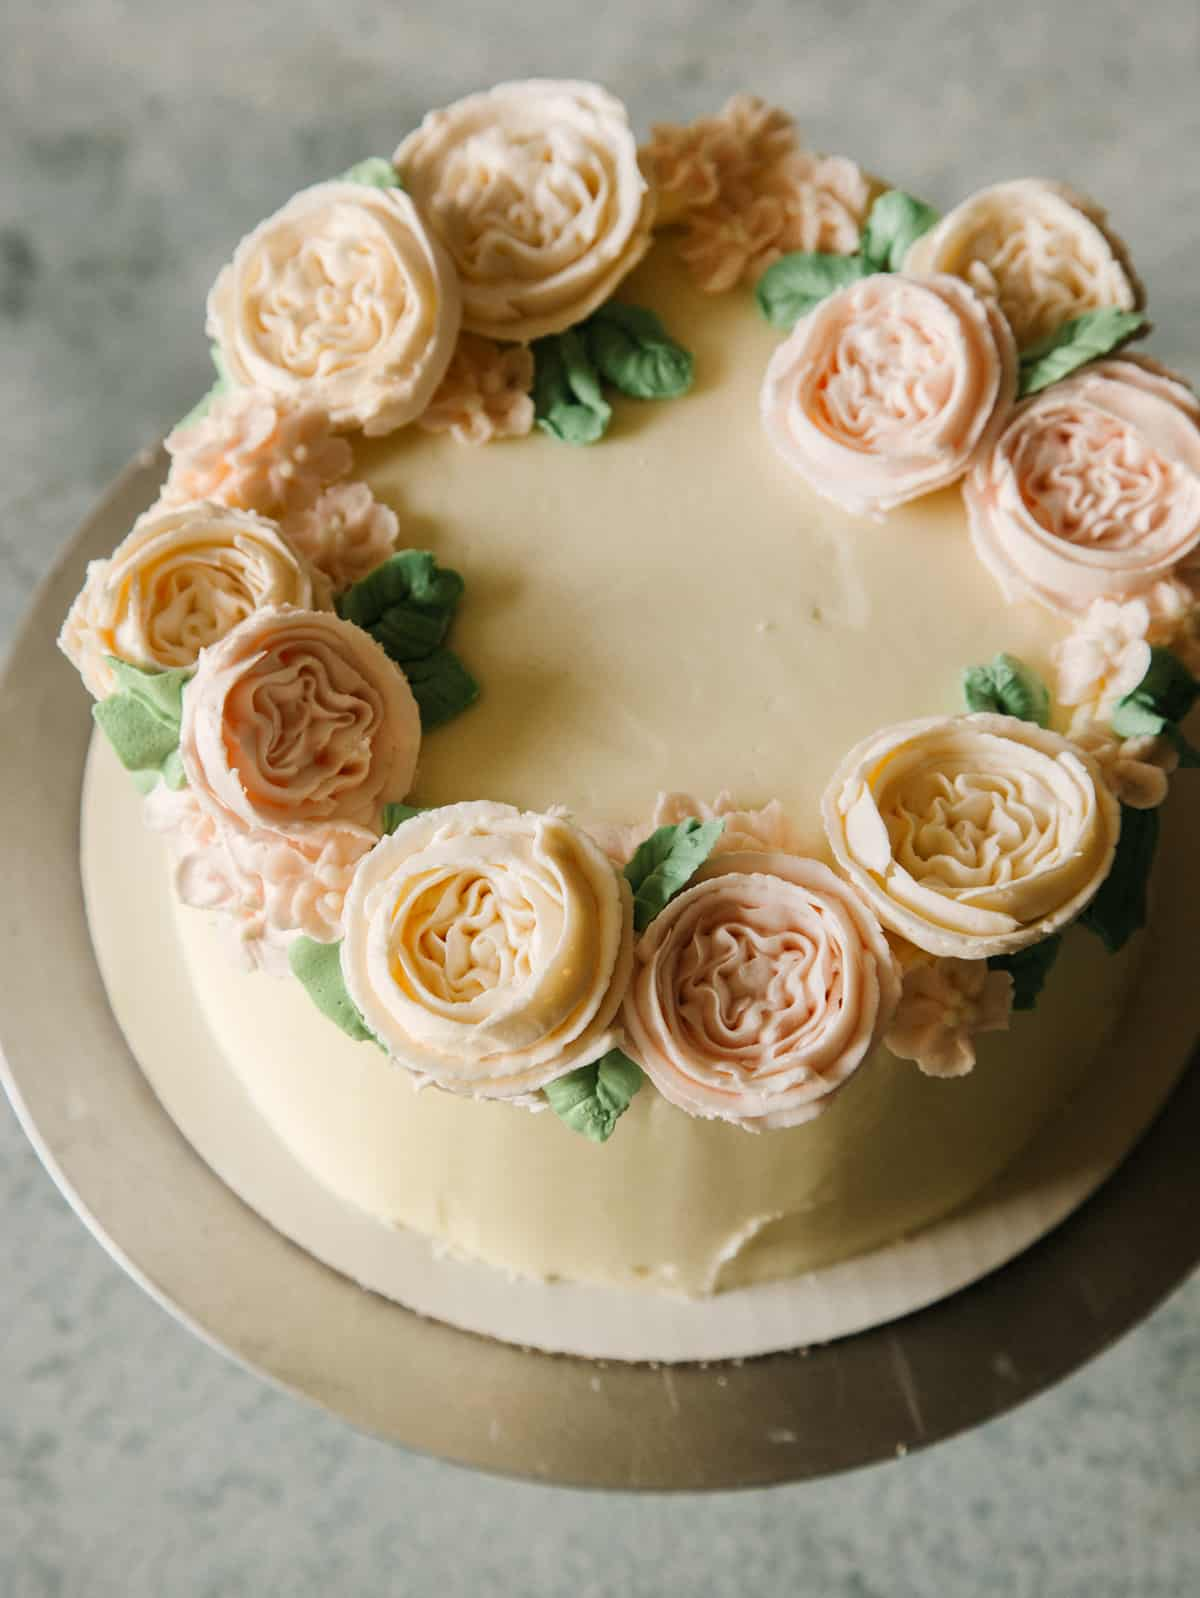 Floral wreath cake on a plate.